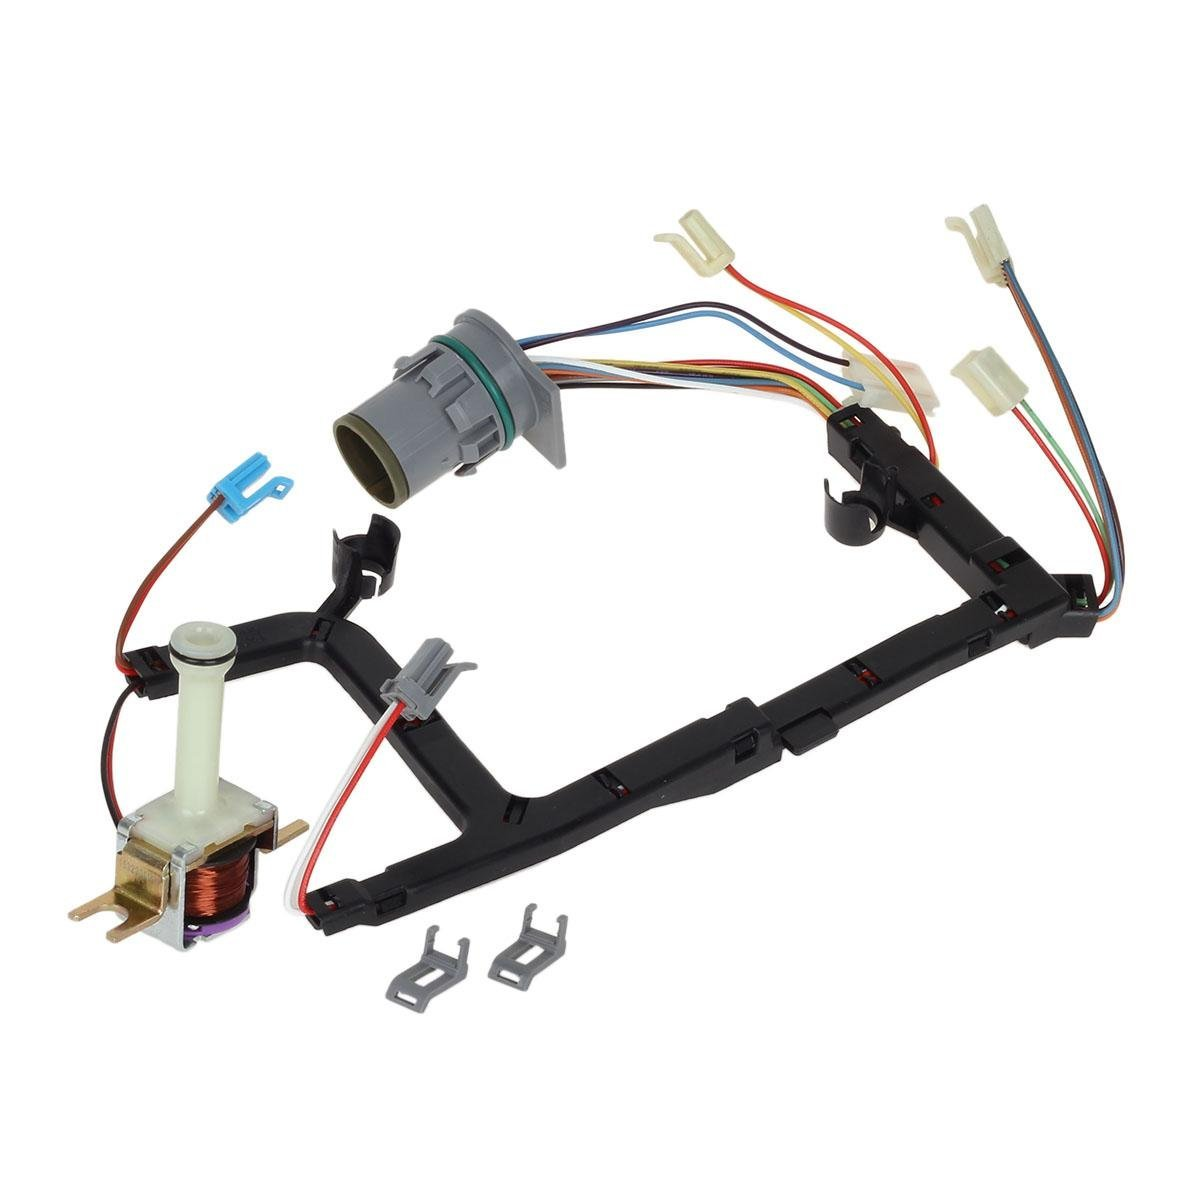 hight resolution of universal 4l60e transmission solenoid internal wire harness with tcc for 1993 2002 gm